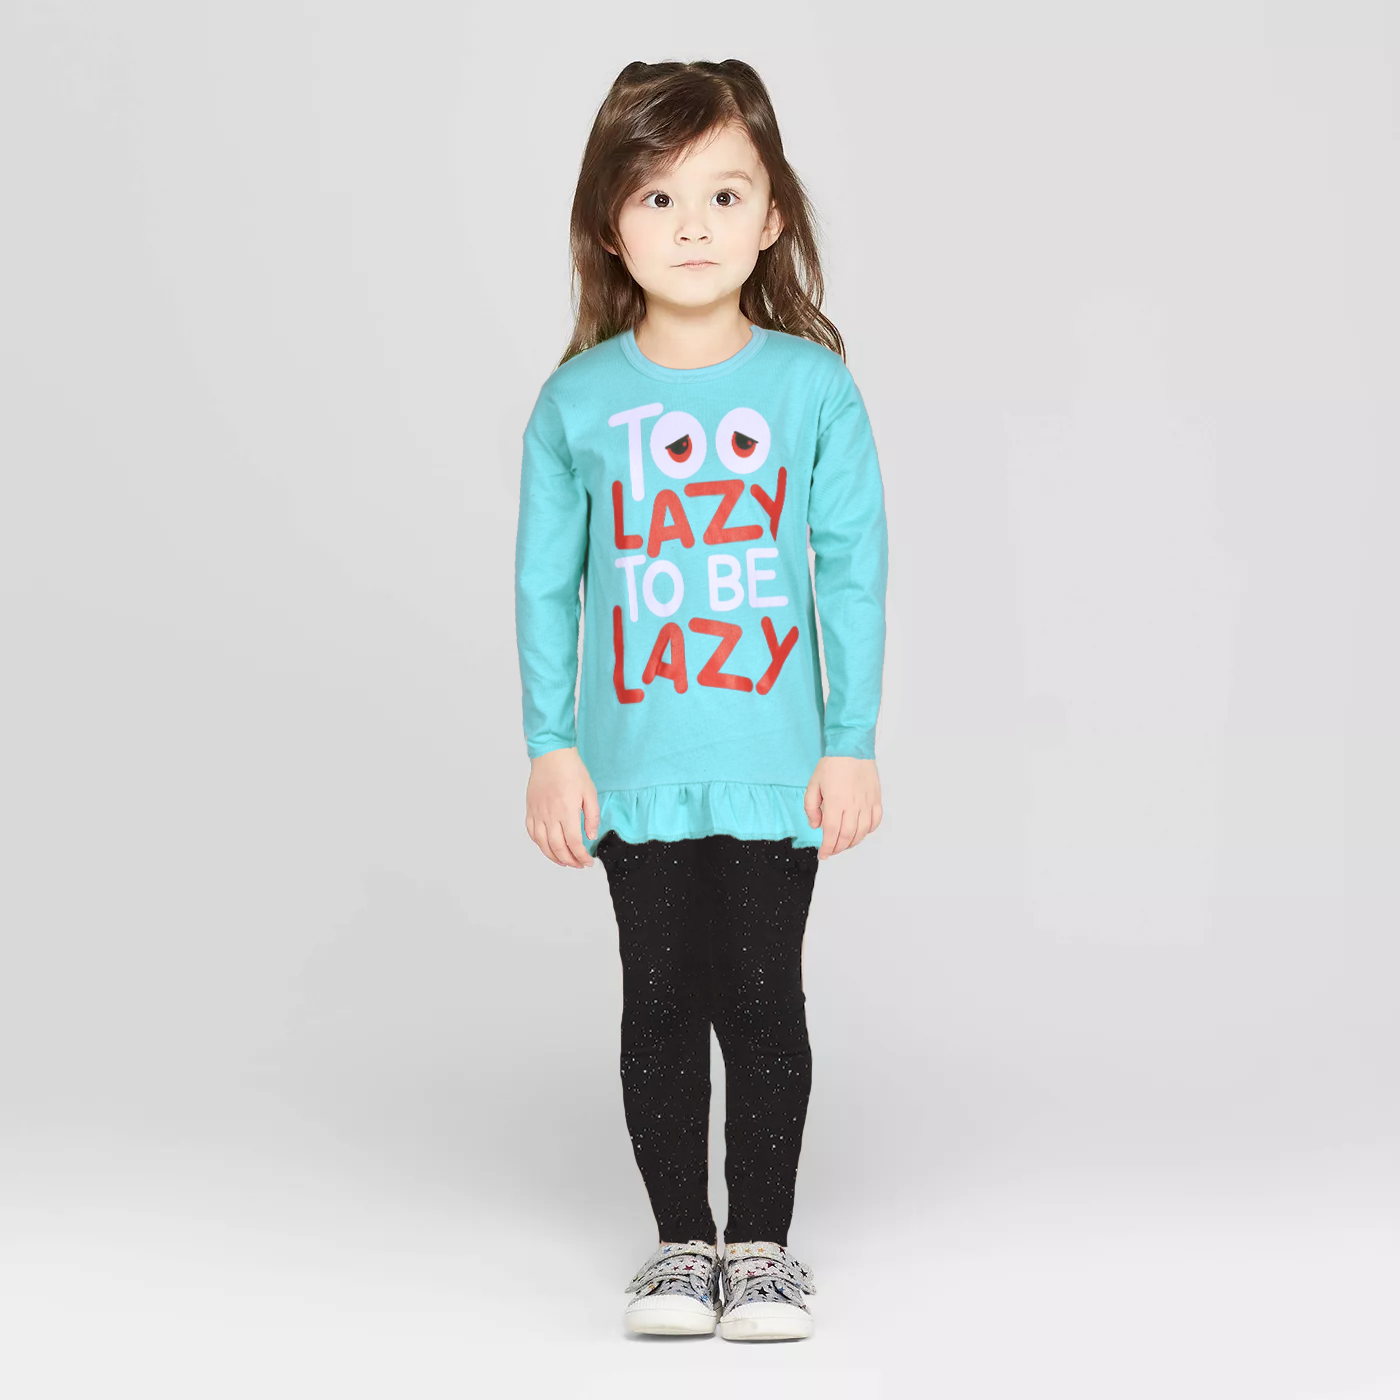 Poler Girl's Too Lazy To Be Lazy Snazzy Long Sleeve Tee Shirt Girl's Tee Shirt IBT Sky Blue Sky Blue S